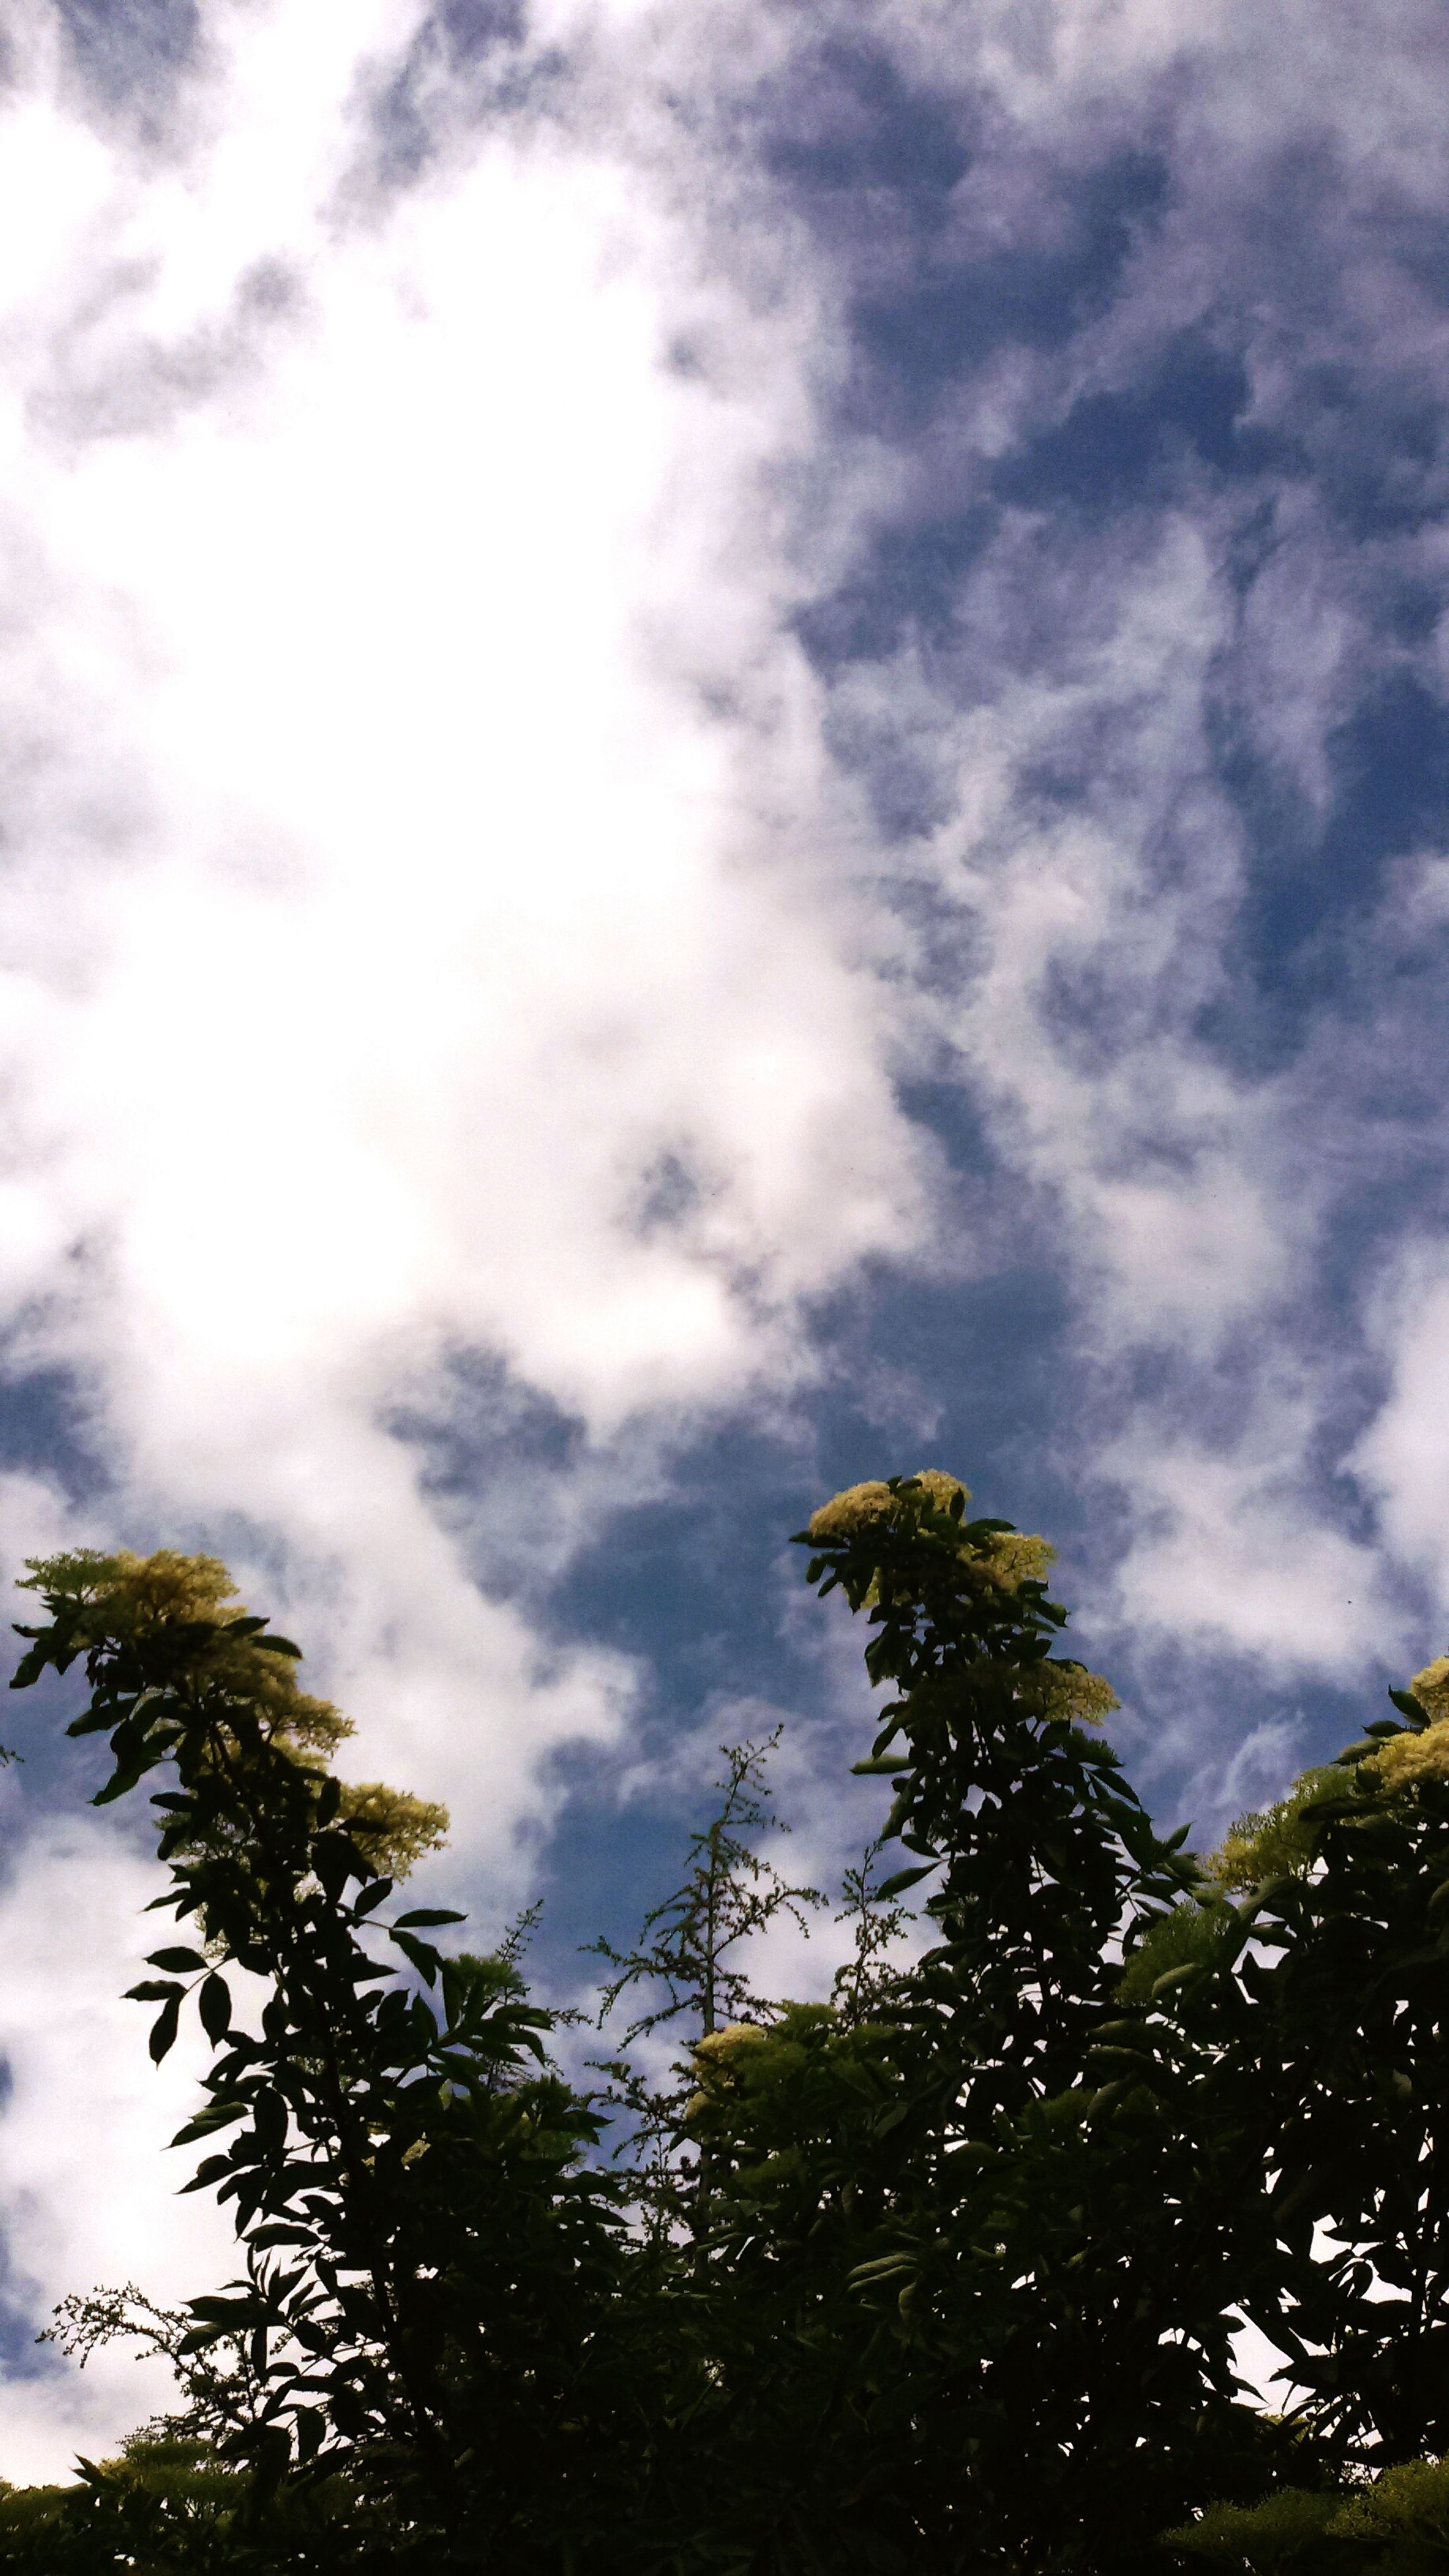 low angle view, sky, tree, cloud - sky, cloudy, tranquility, beauty in nature, nature, growth, tranquil scene, scenics, cloud, weather, day, branch, overcast, outdoors, no people, idyllic, treetop